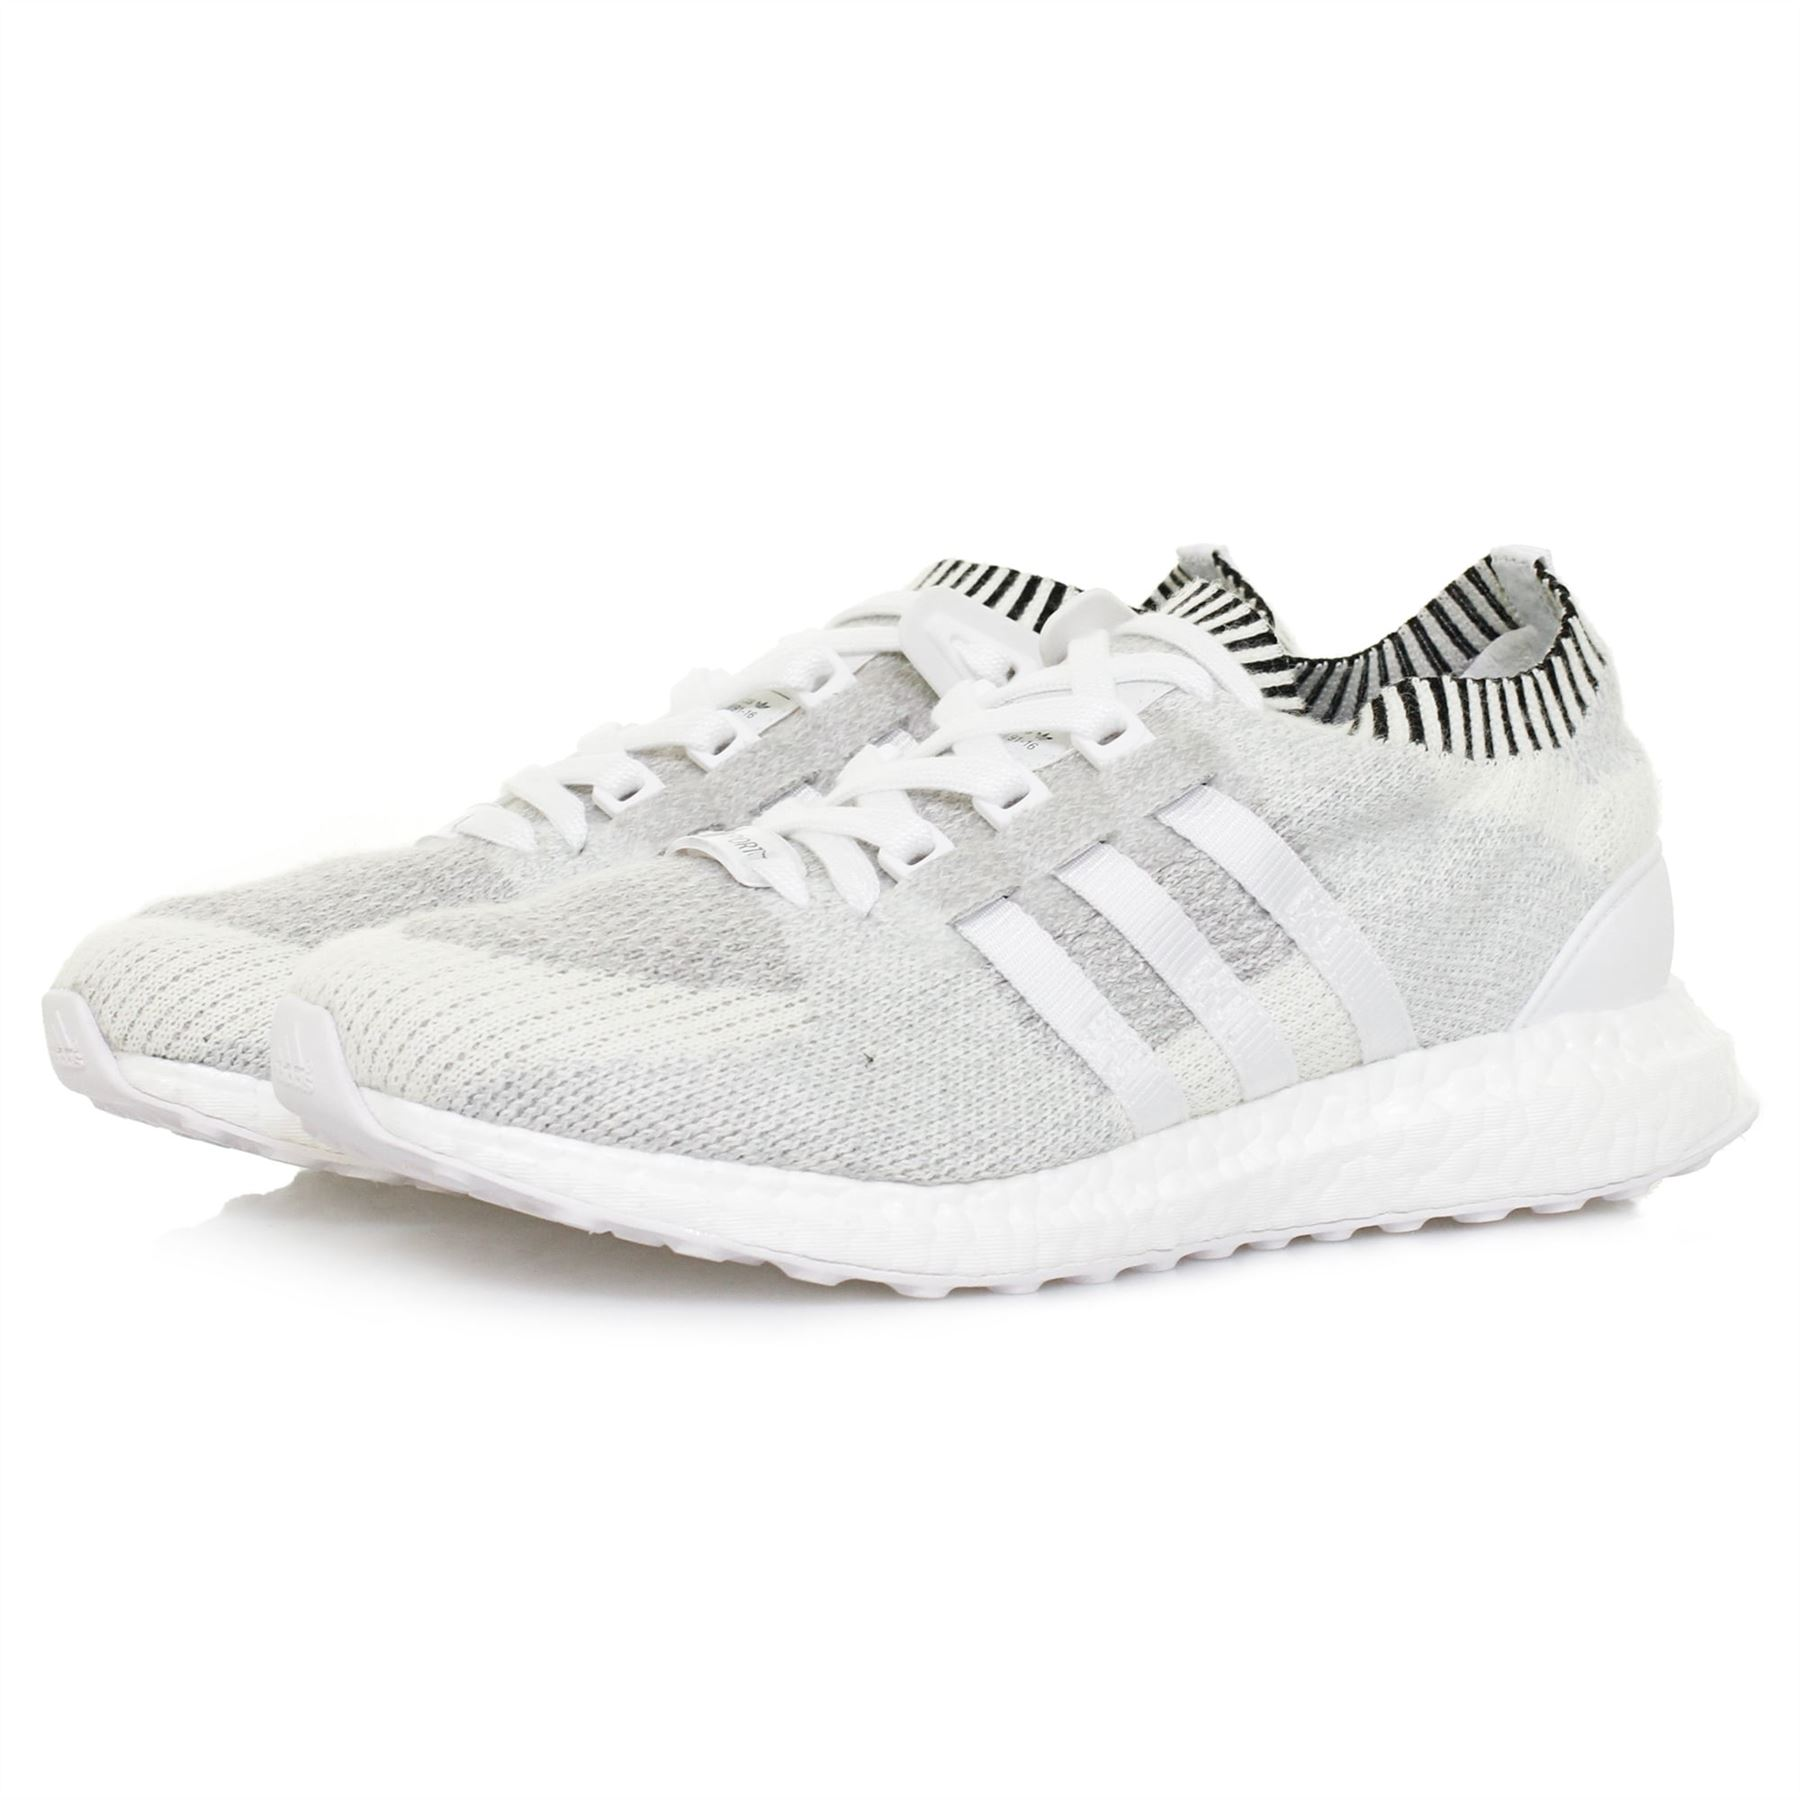 adidas homme chaussures blanche